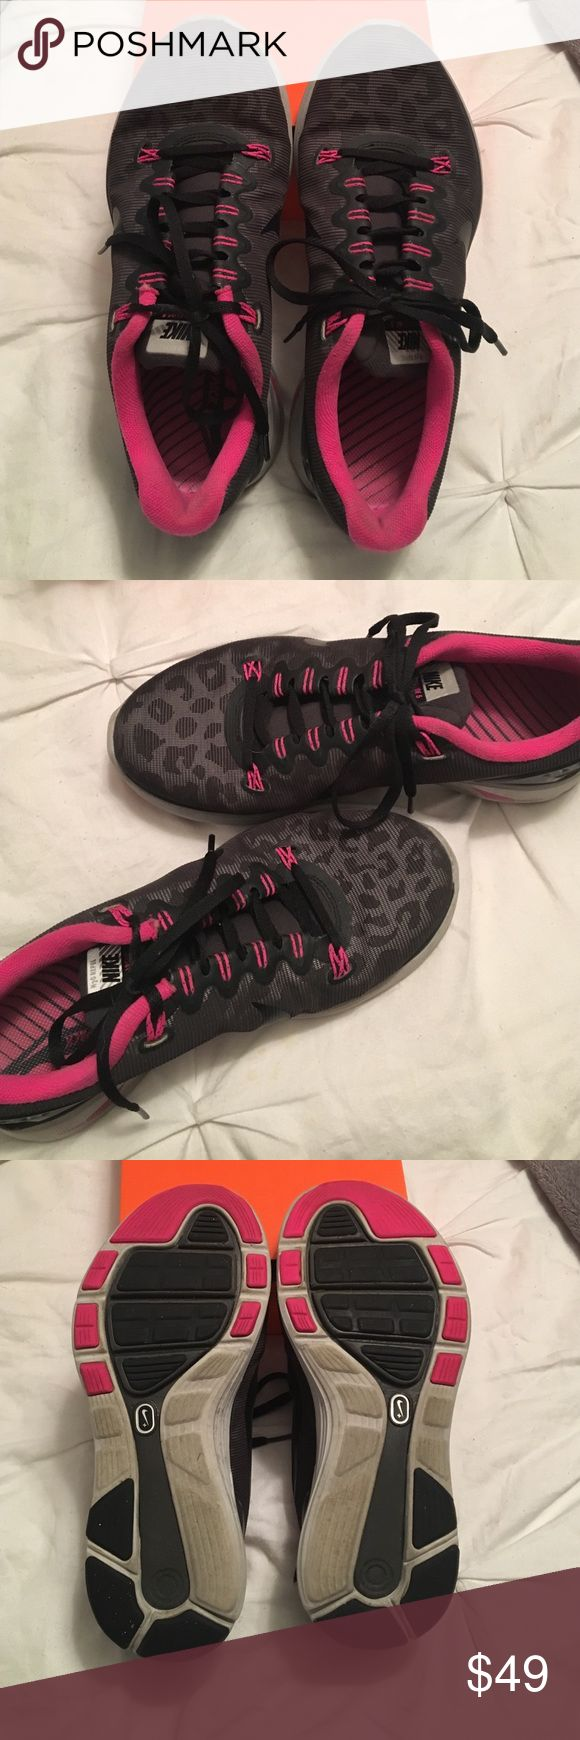 Nike Women's Running Shoes Size 7.5 Women's Running Shoes • Pink & Leopard  💖😍 Nike Shoes Athletic Shoes